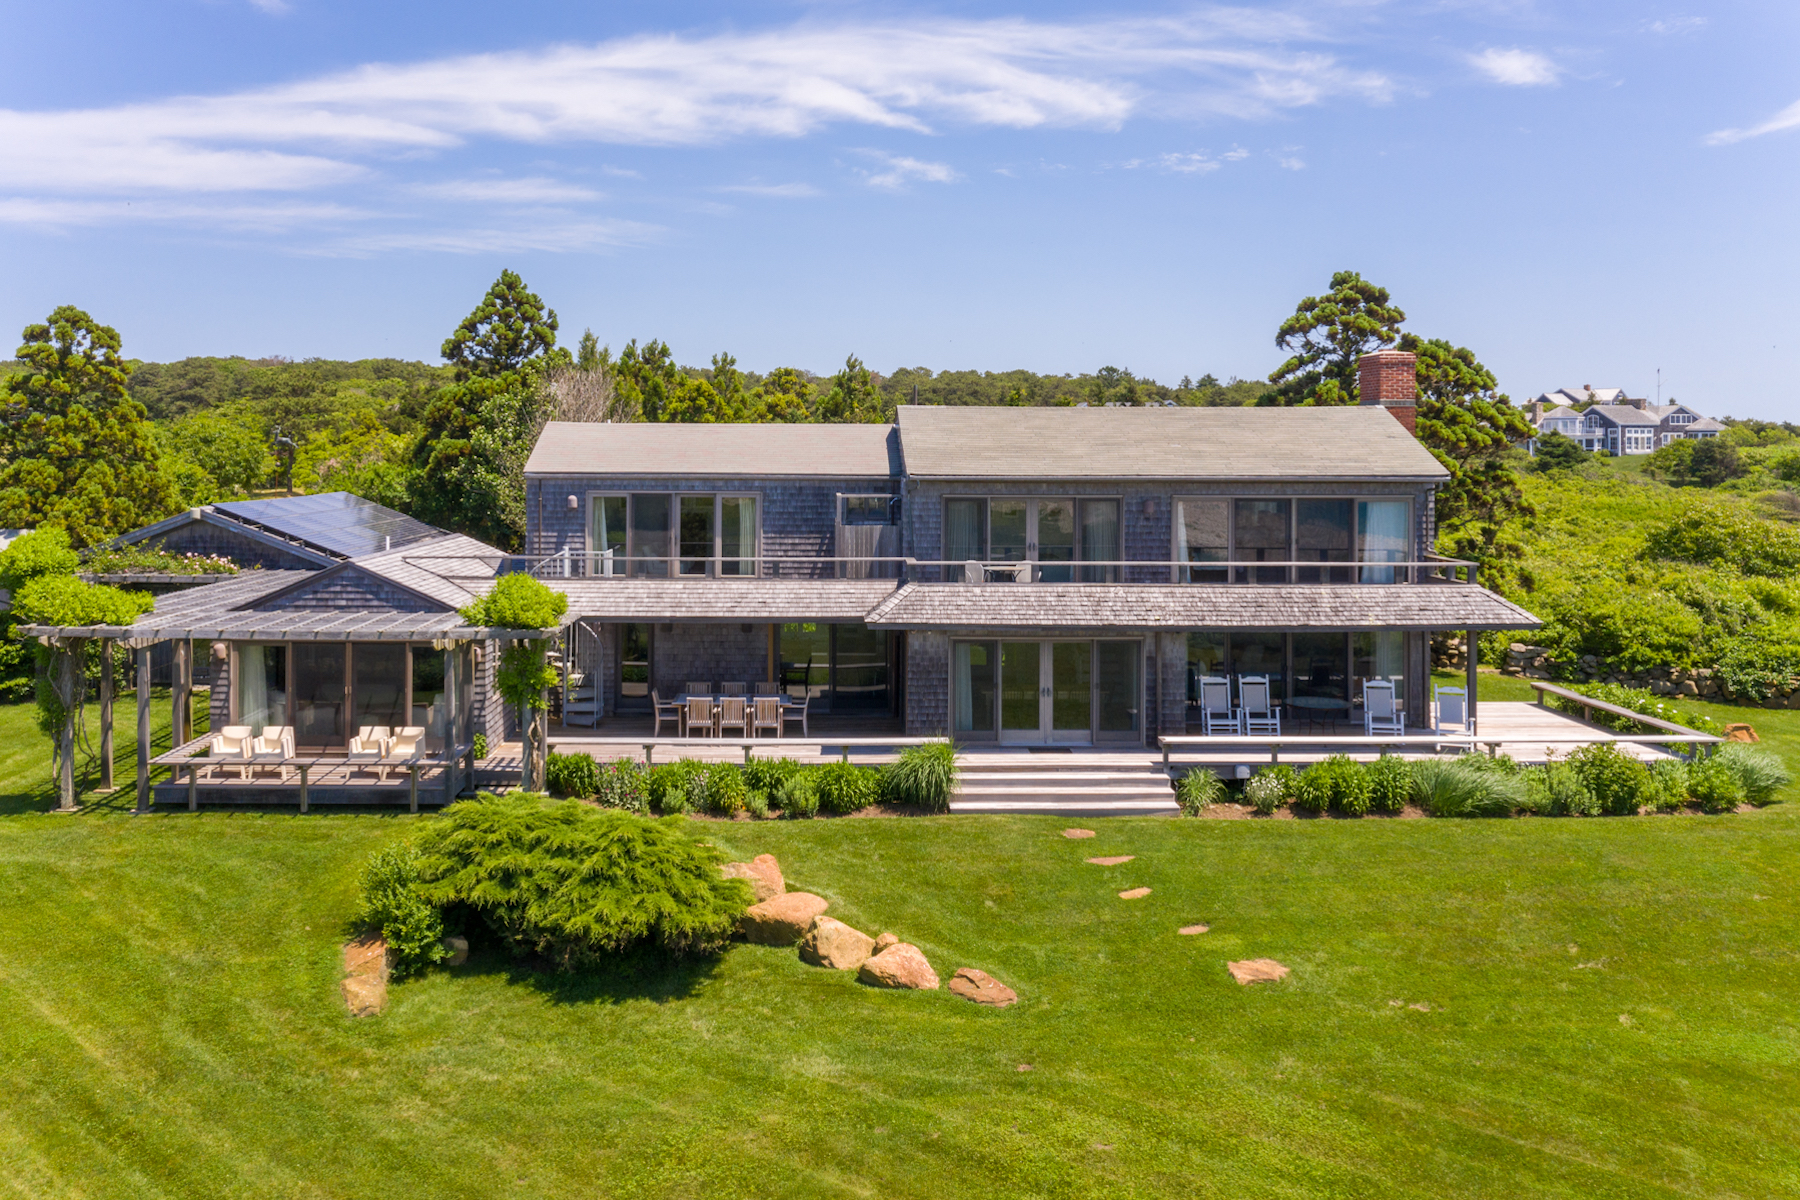 Single Family Homes for Sale at Seaside Retreat on Martha's Vineyard 95 Stonewall Road Chilmark, Massachusetts 02535 United States